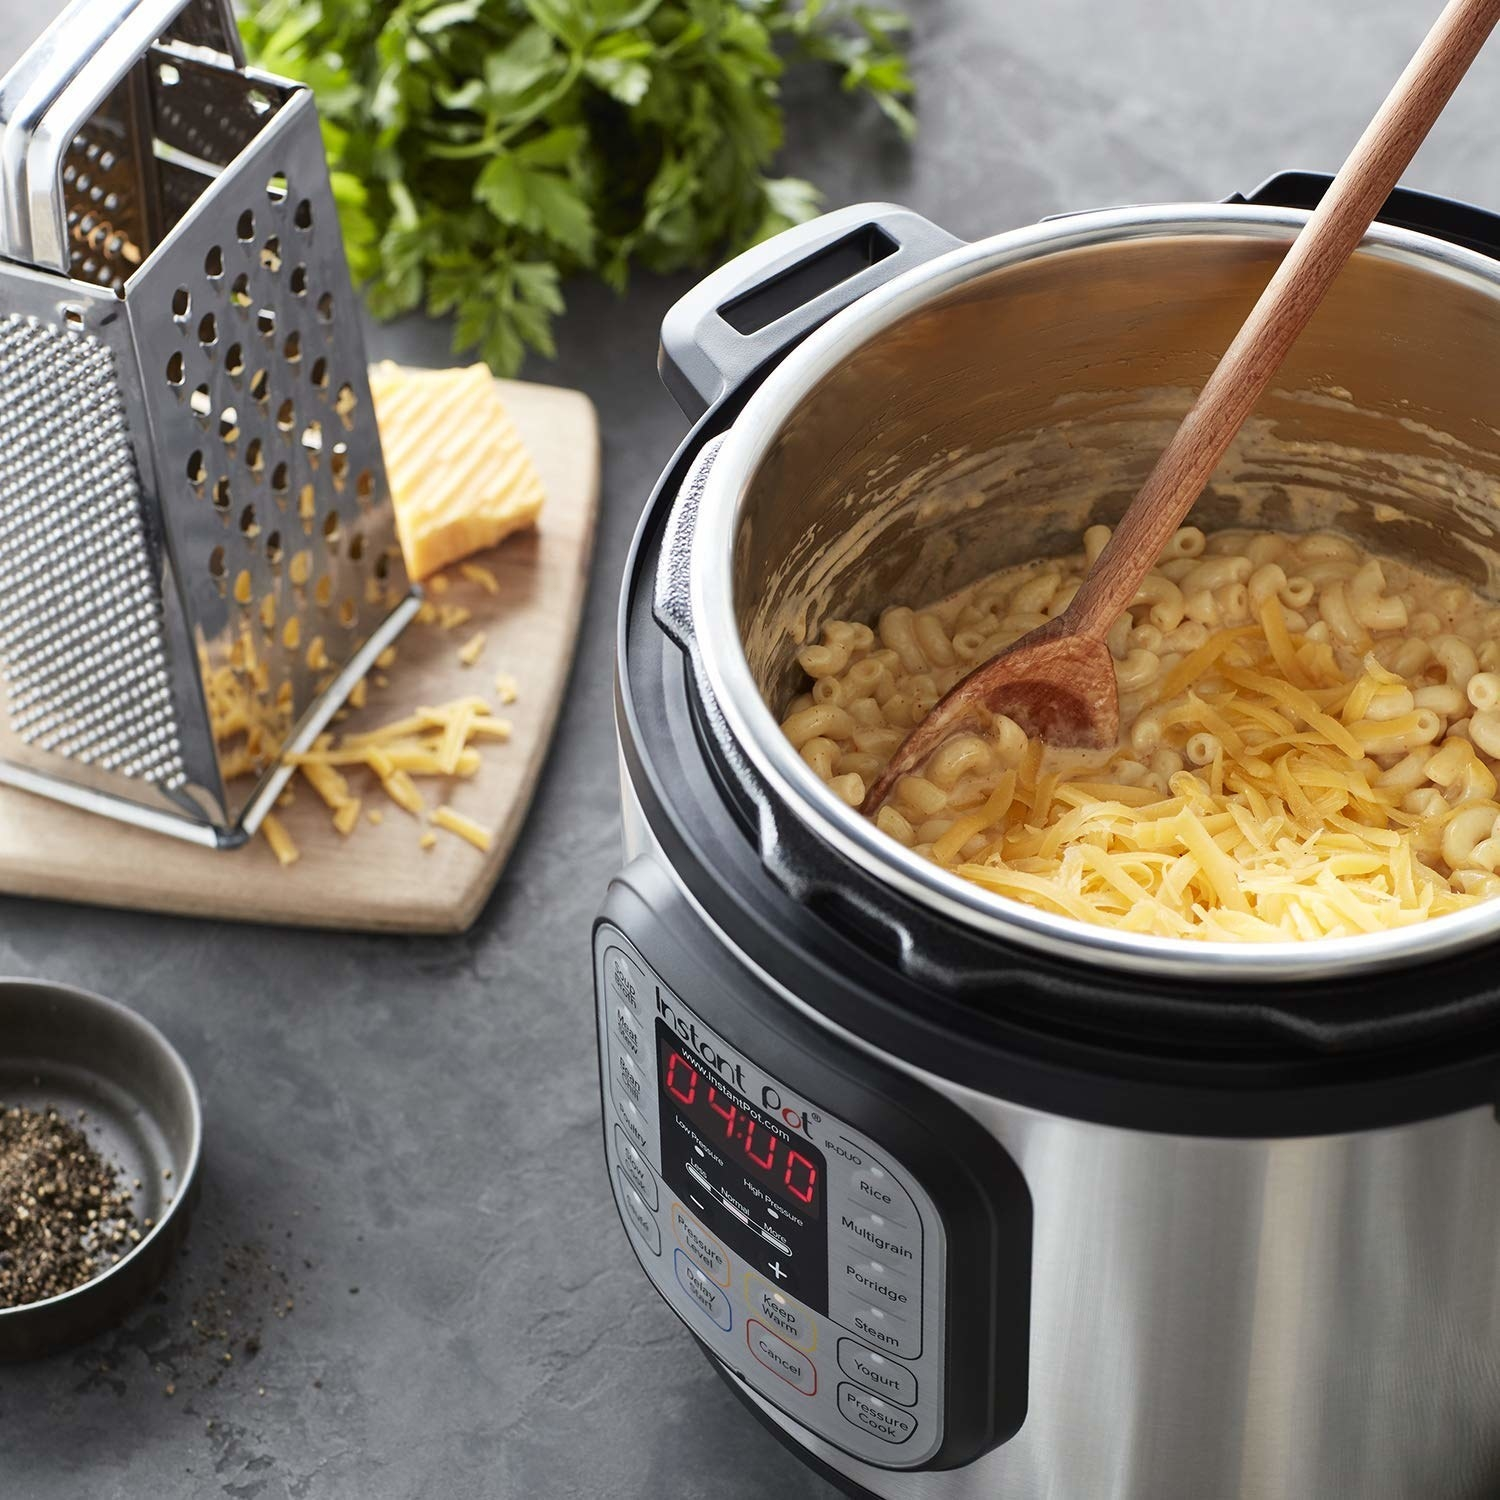 Macaroni and cheese being made inside Instant Pot